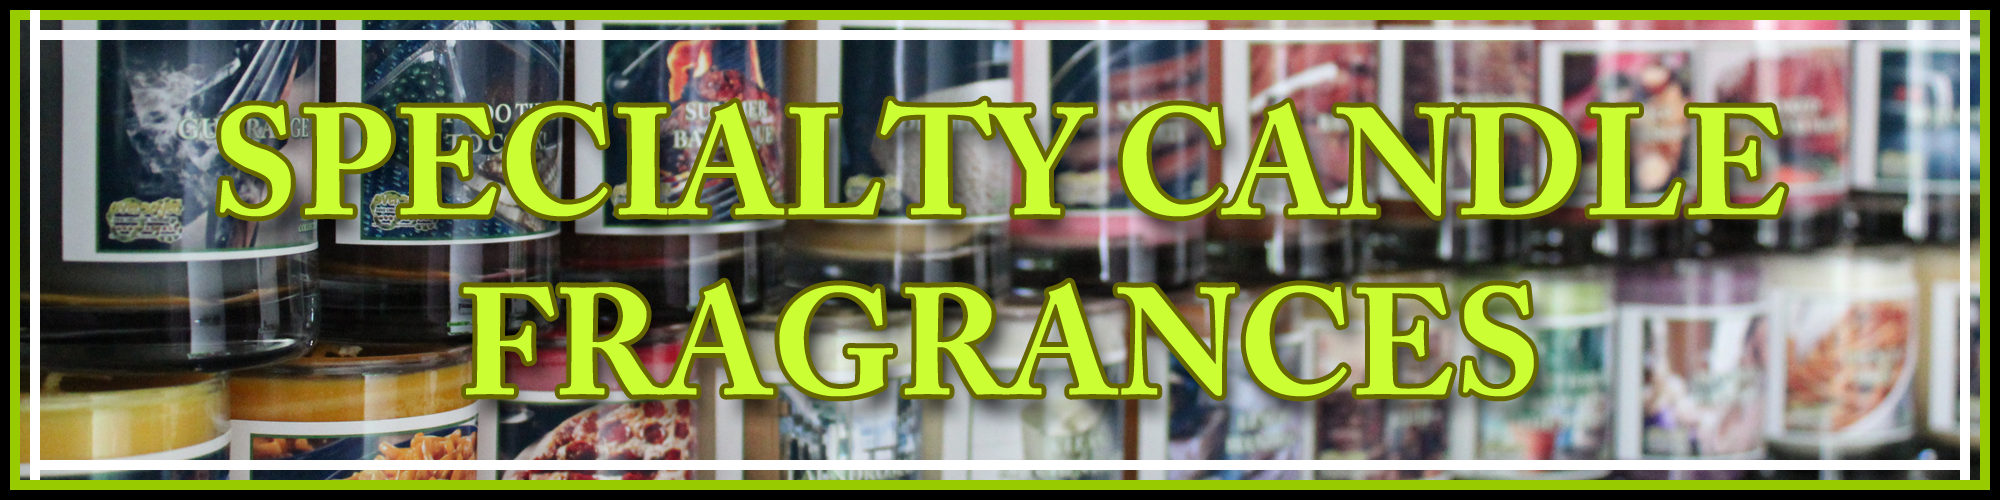 OverSoyed Fine Organic Products - Specialty Candle Fragrances